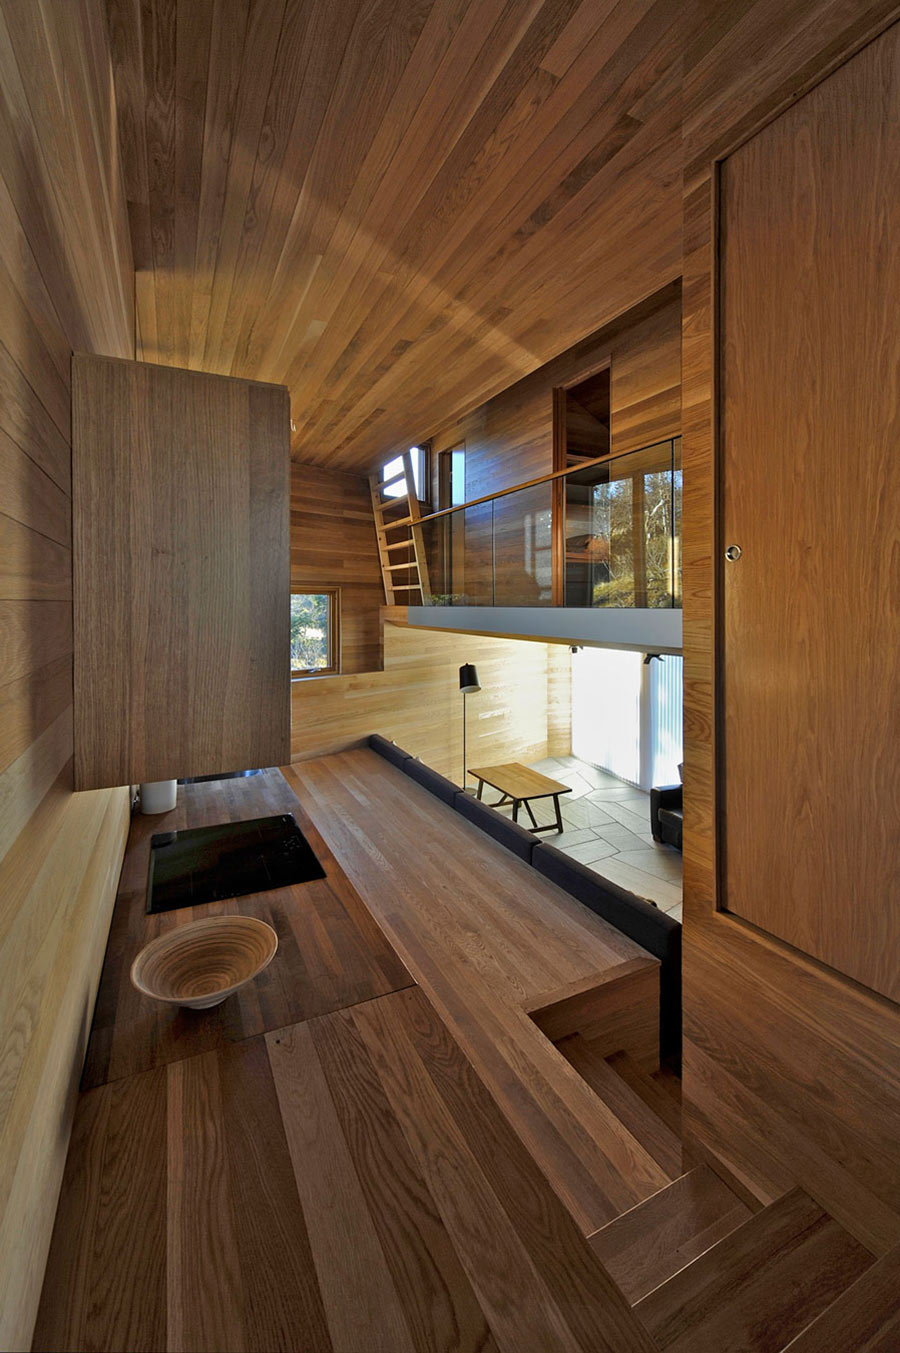 Open Plan Living, Ski Home in Kvitfjell, Norway: Twisted Cabin